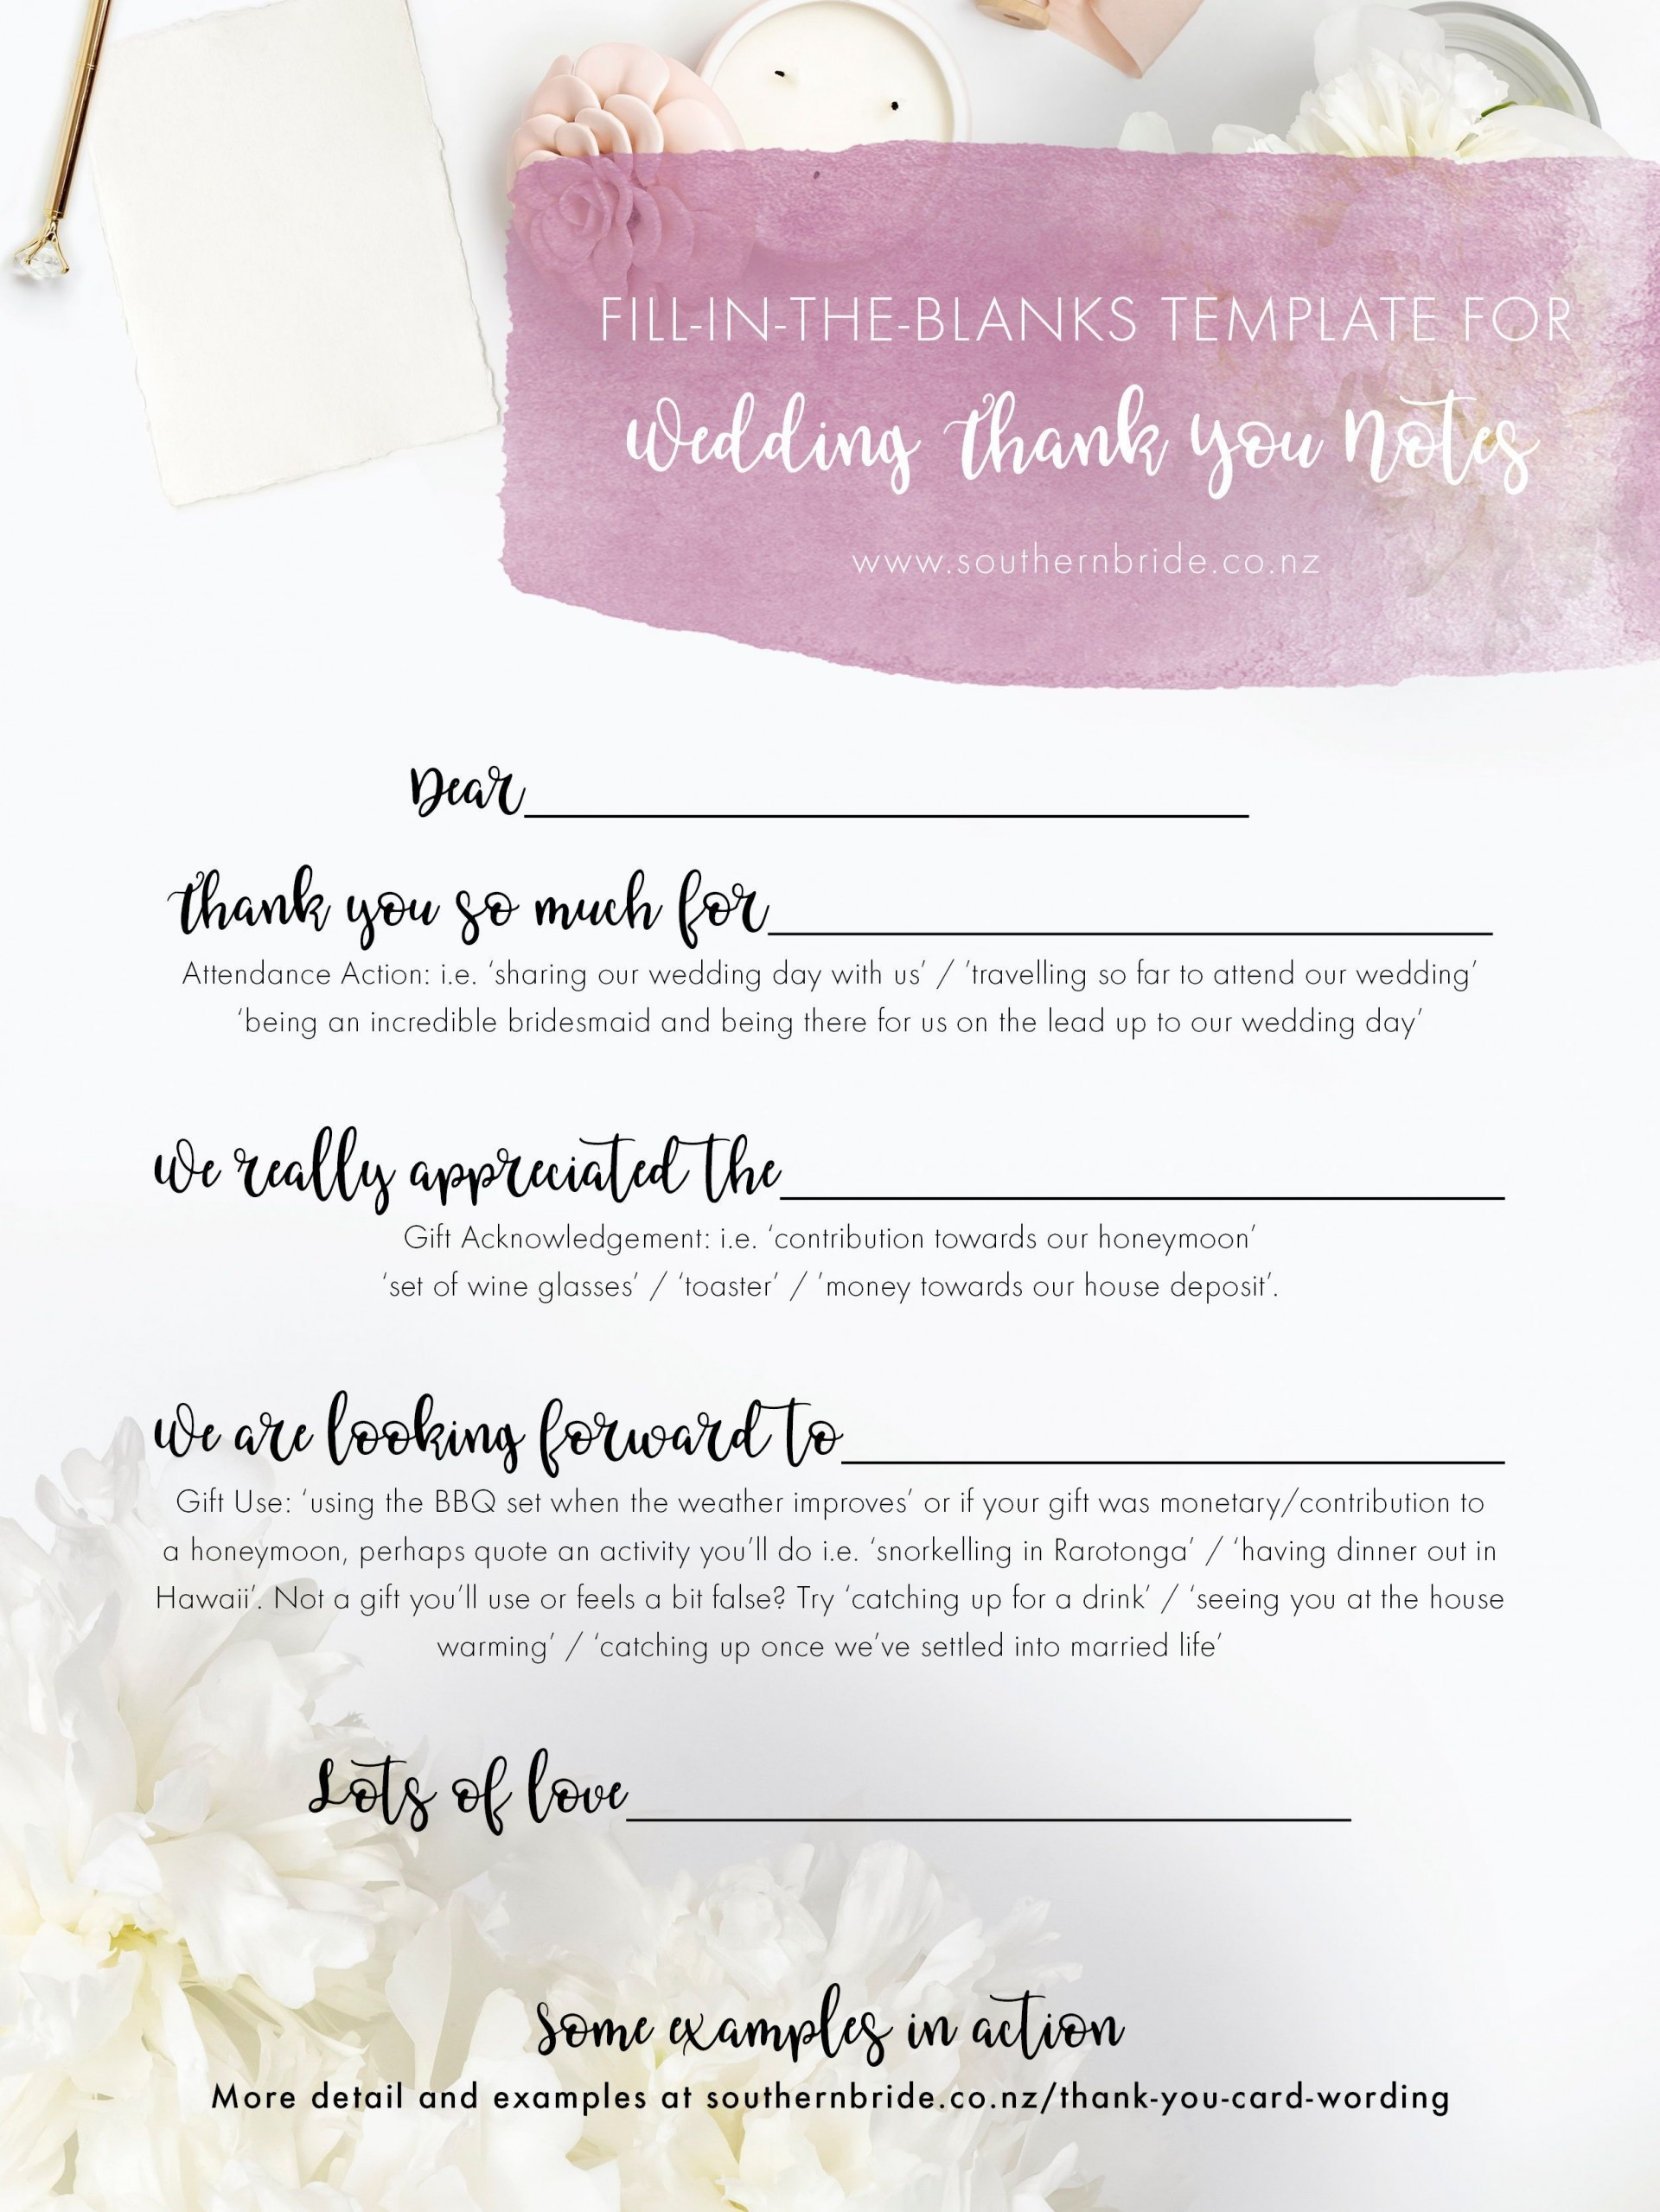 002 Wondrou Thank You Note Template Wedding Money Sample  Card Example For Cash Gift1920